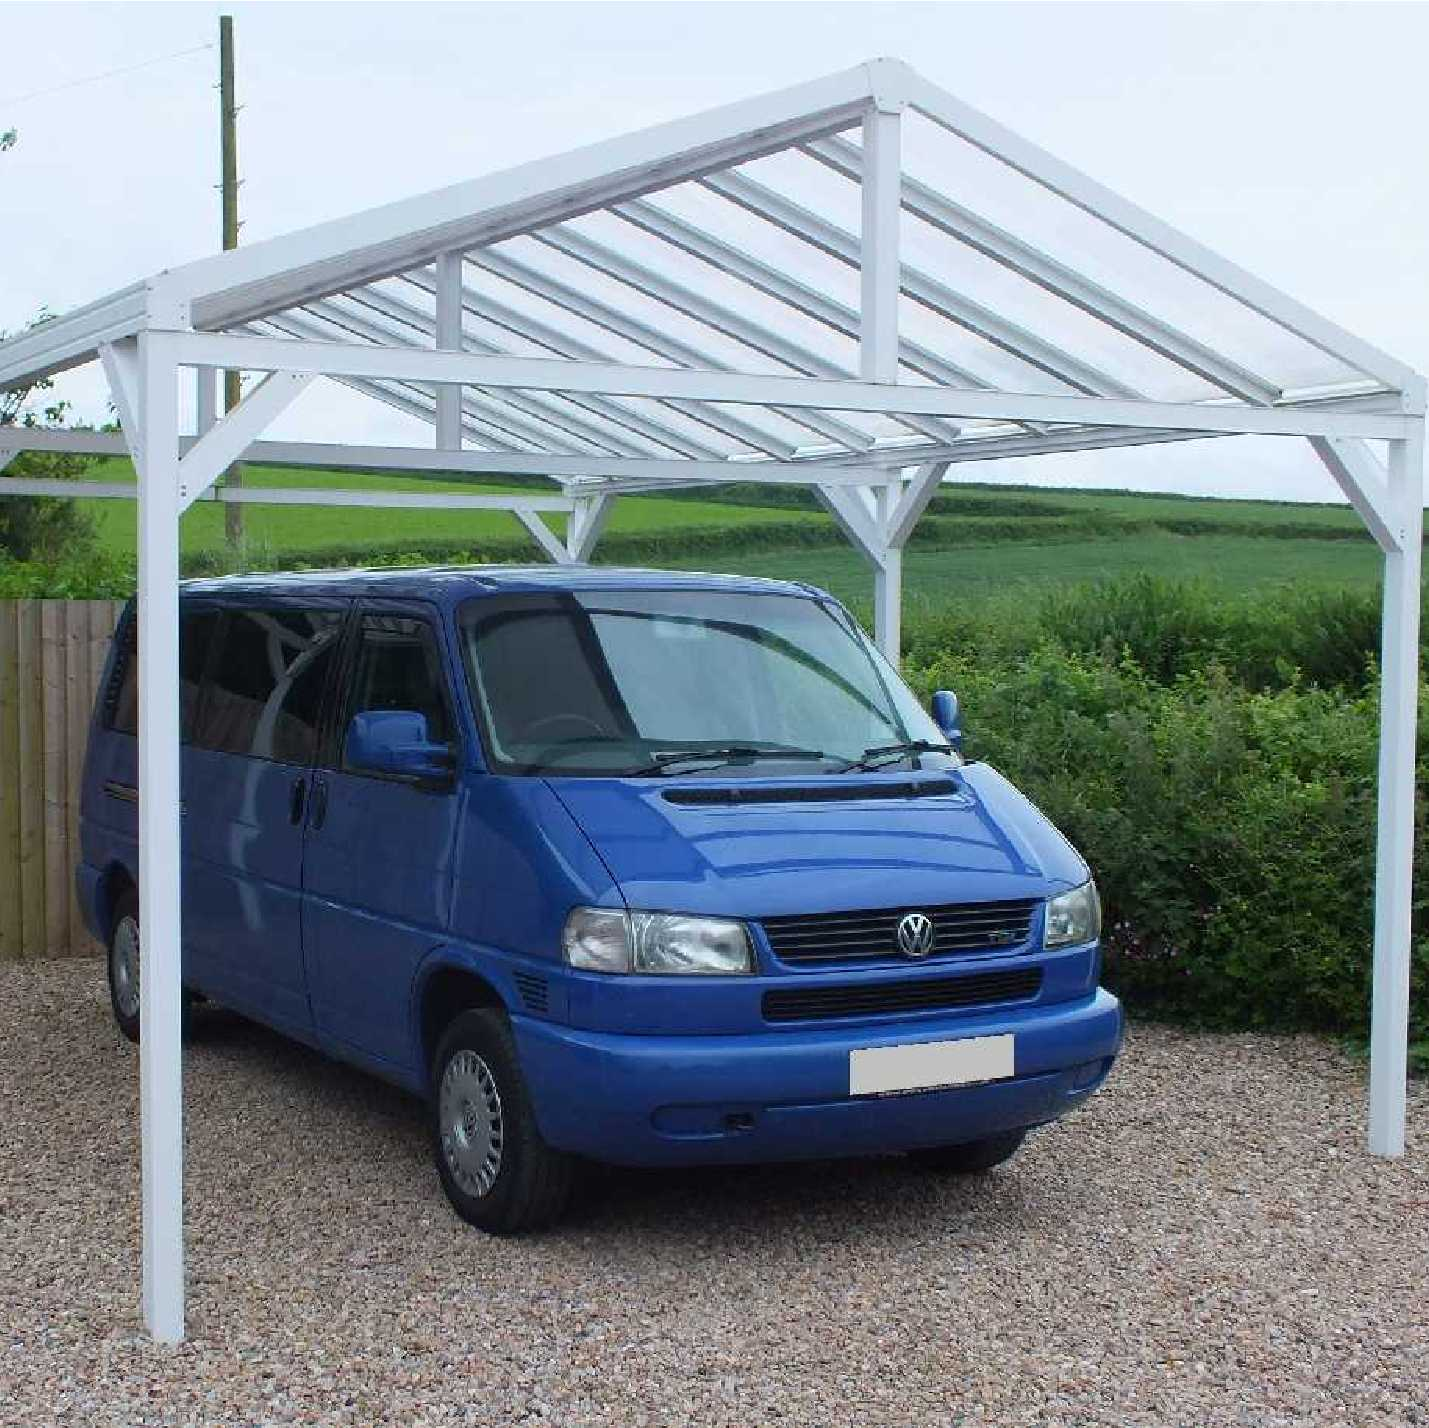 Omega Smart Free-Standing, Gable-Roof (type 1) Canopy with 16mm Polycarbonate Glazing - 6.3m (W) x 3.5m (P), (8) Supporting Posts